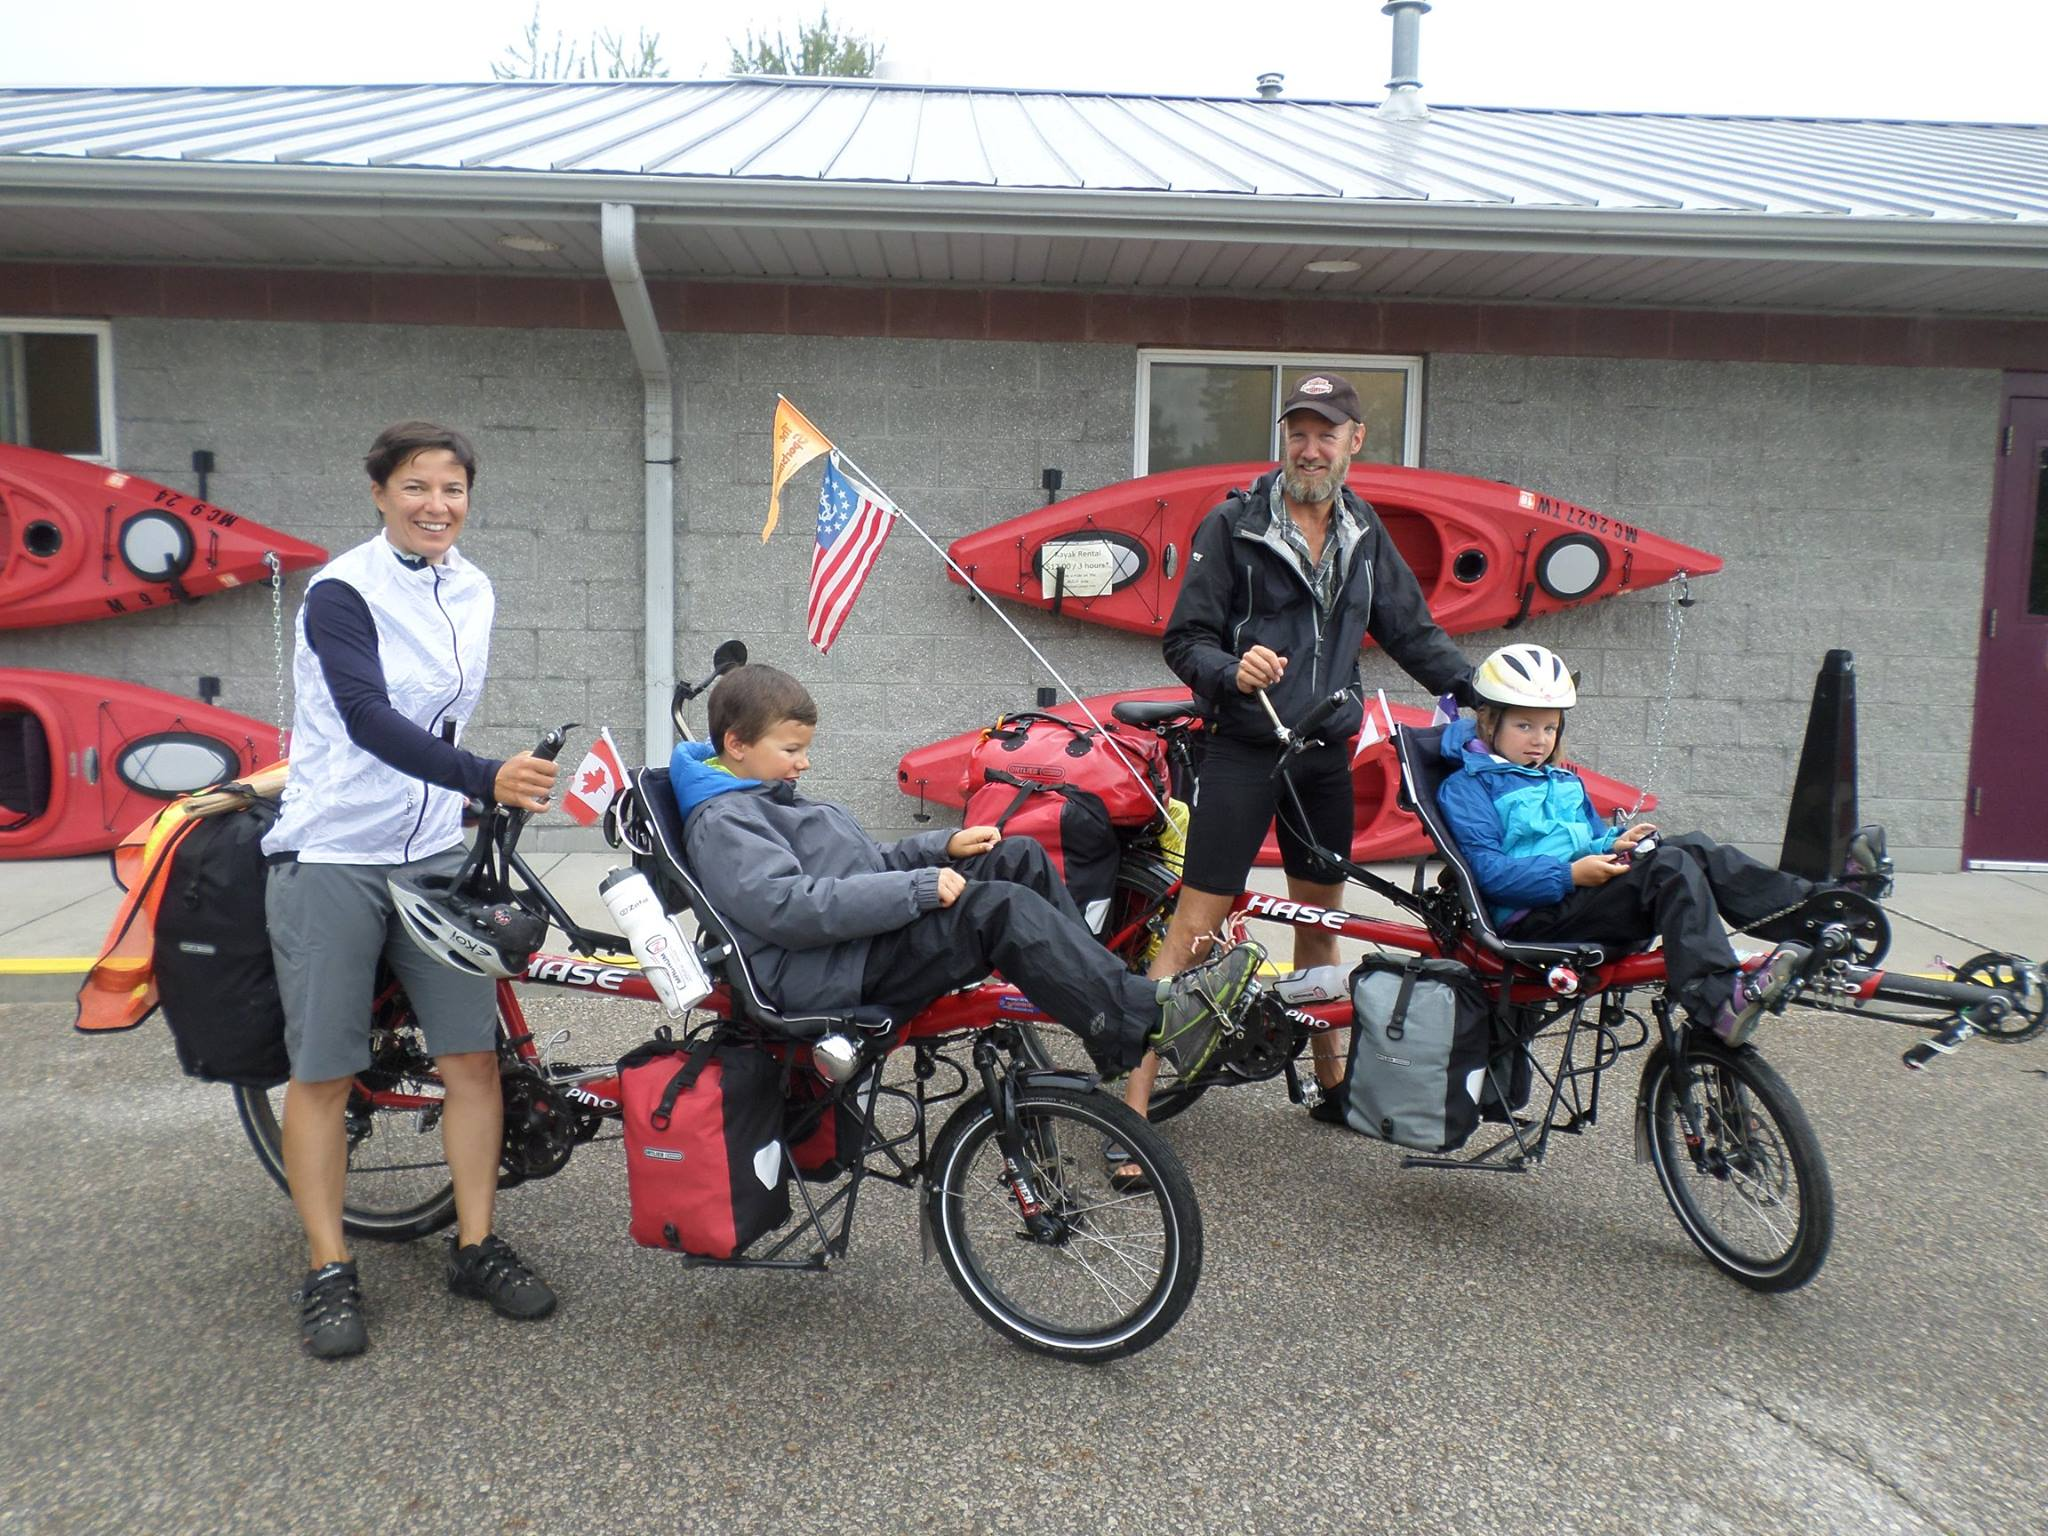 Campground vacationers on bikes with kids